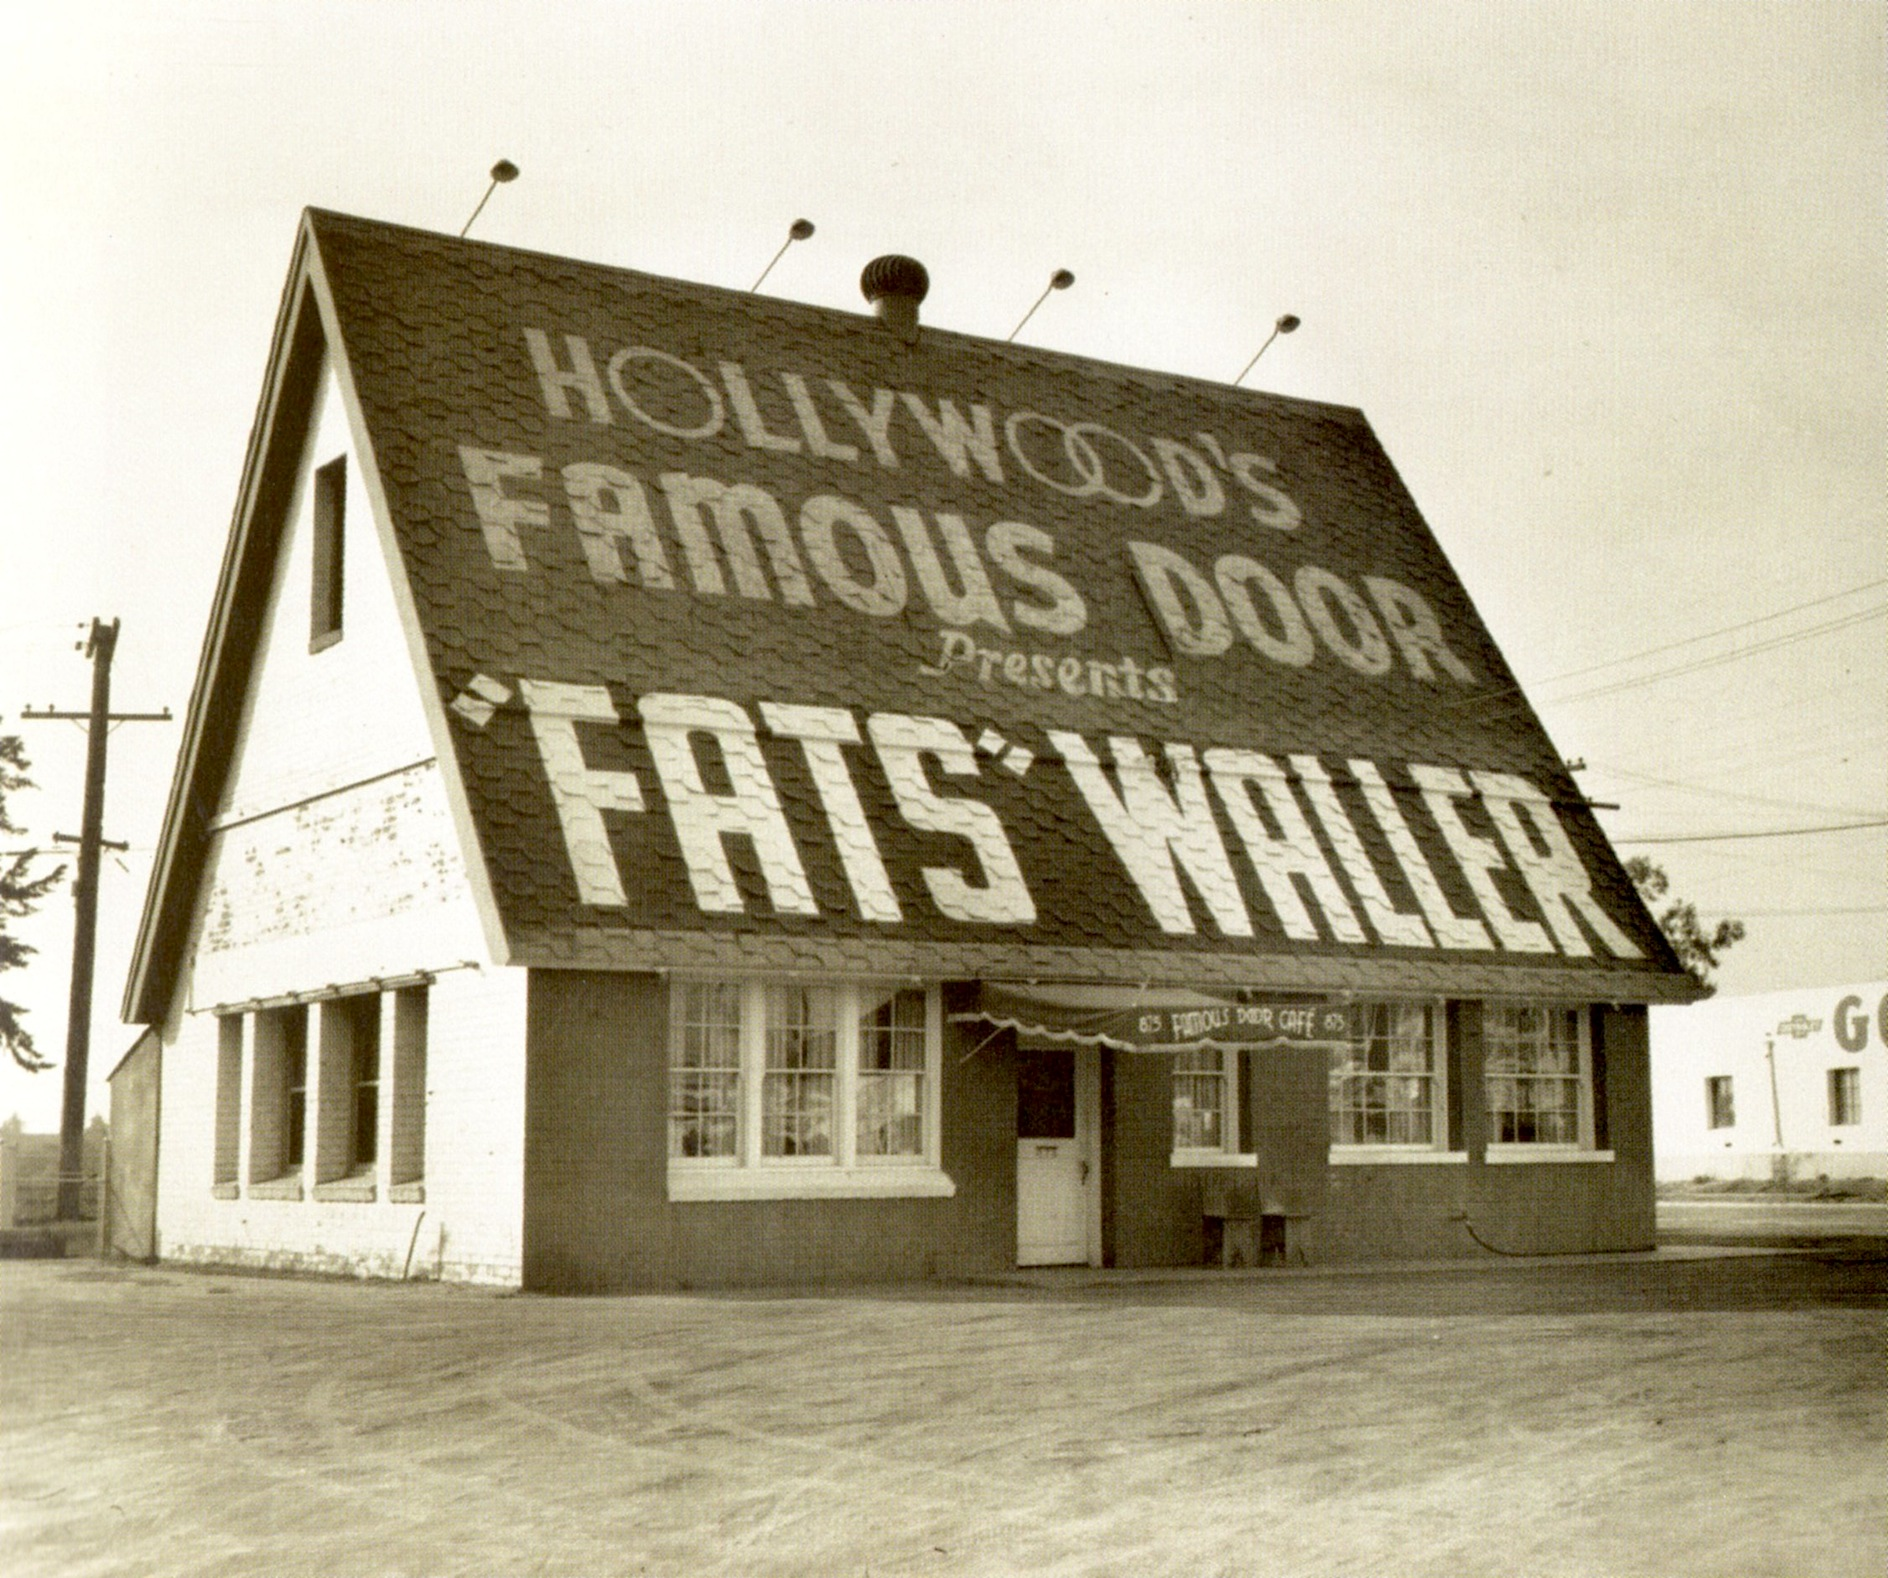 Resultat d'imatges de hollywoods famous door fats waller